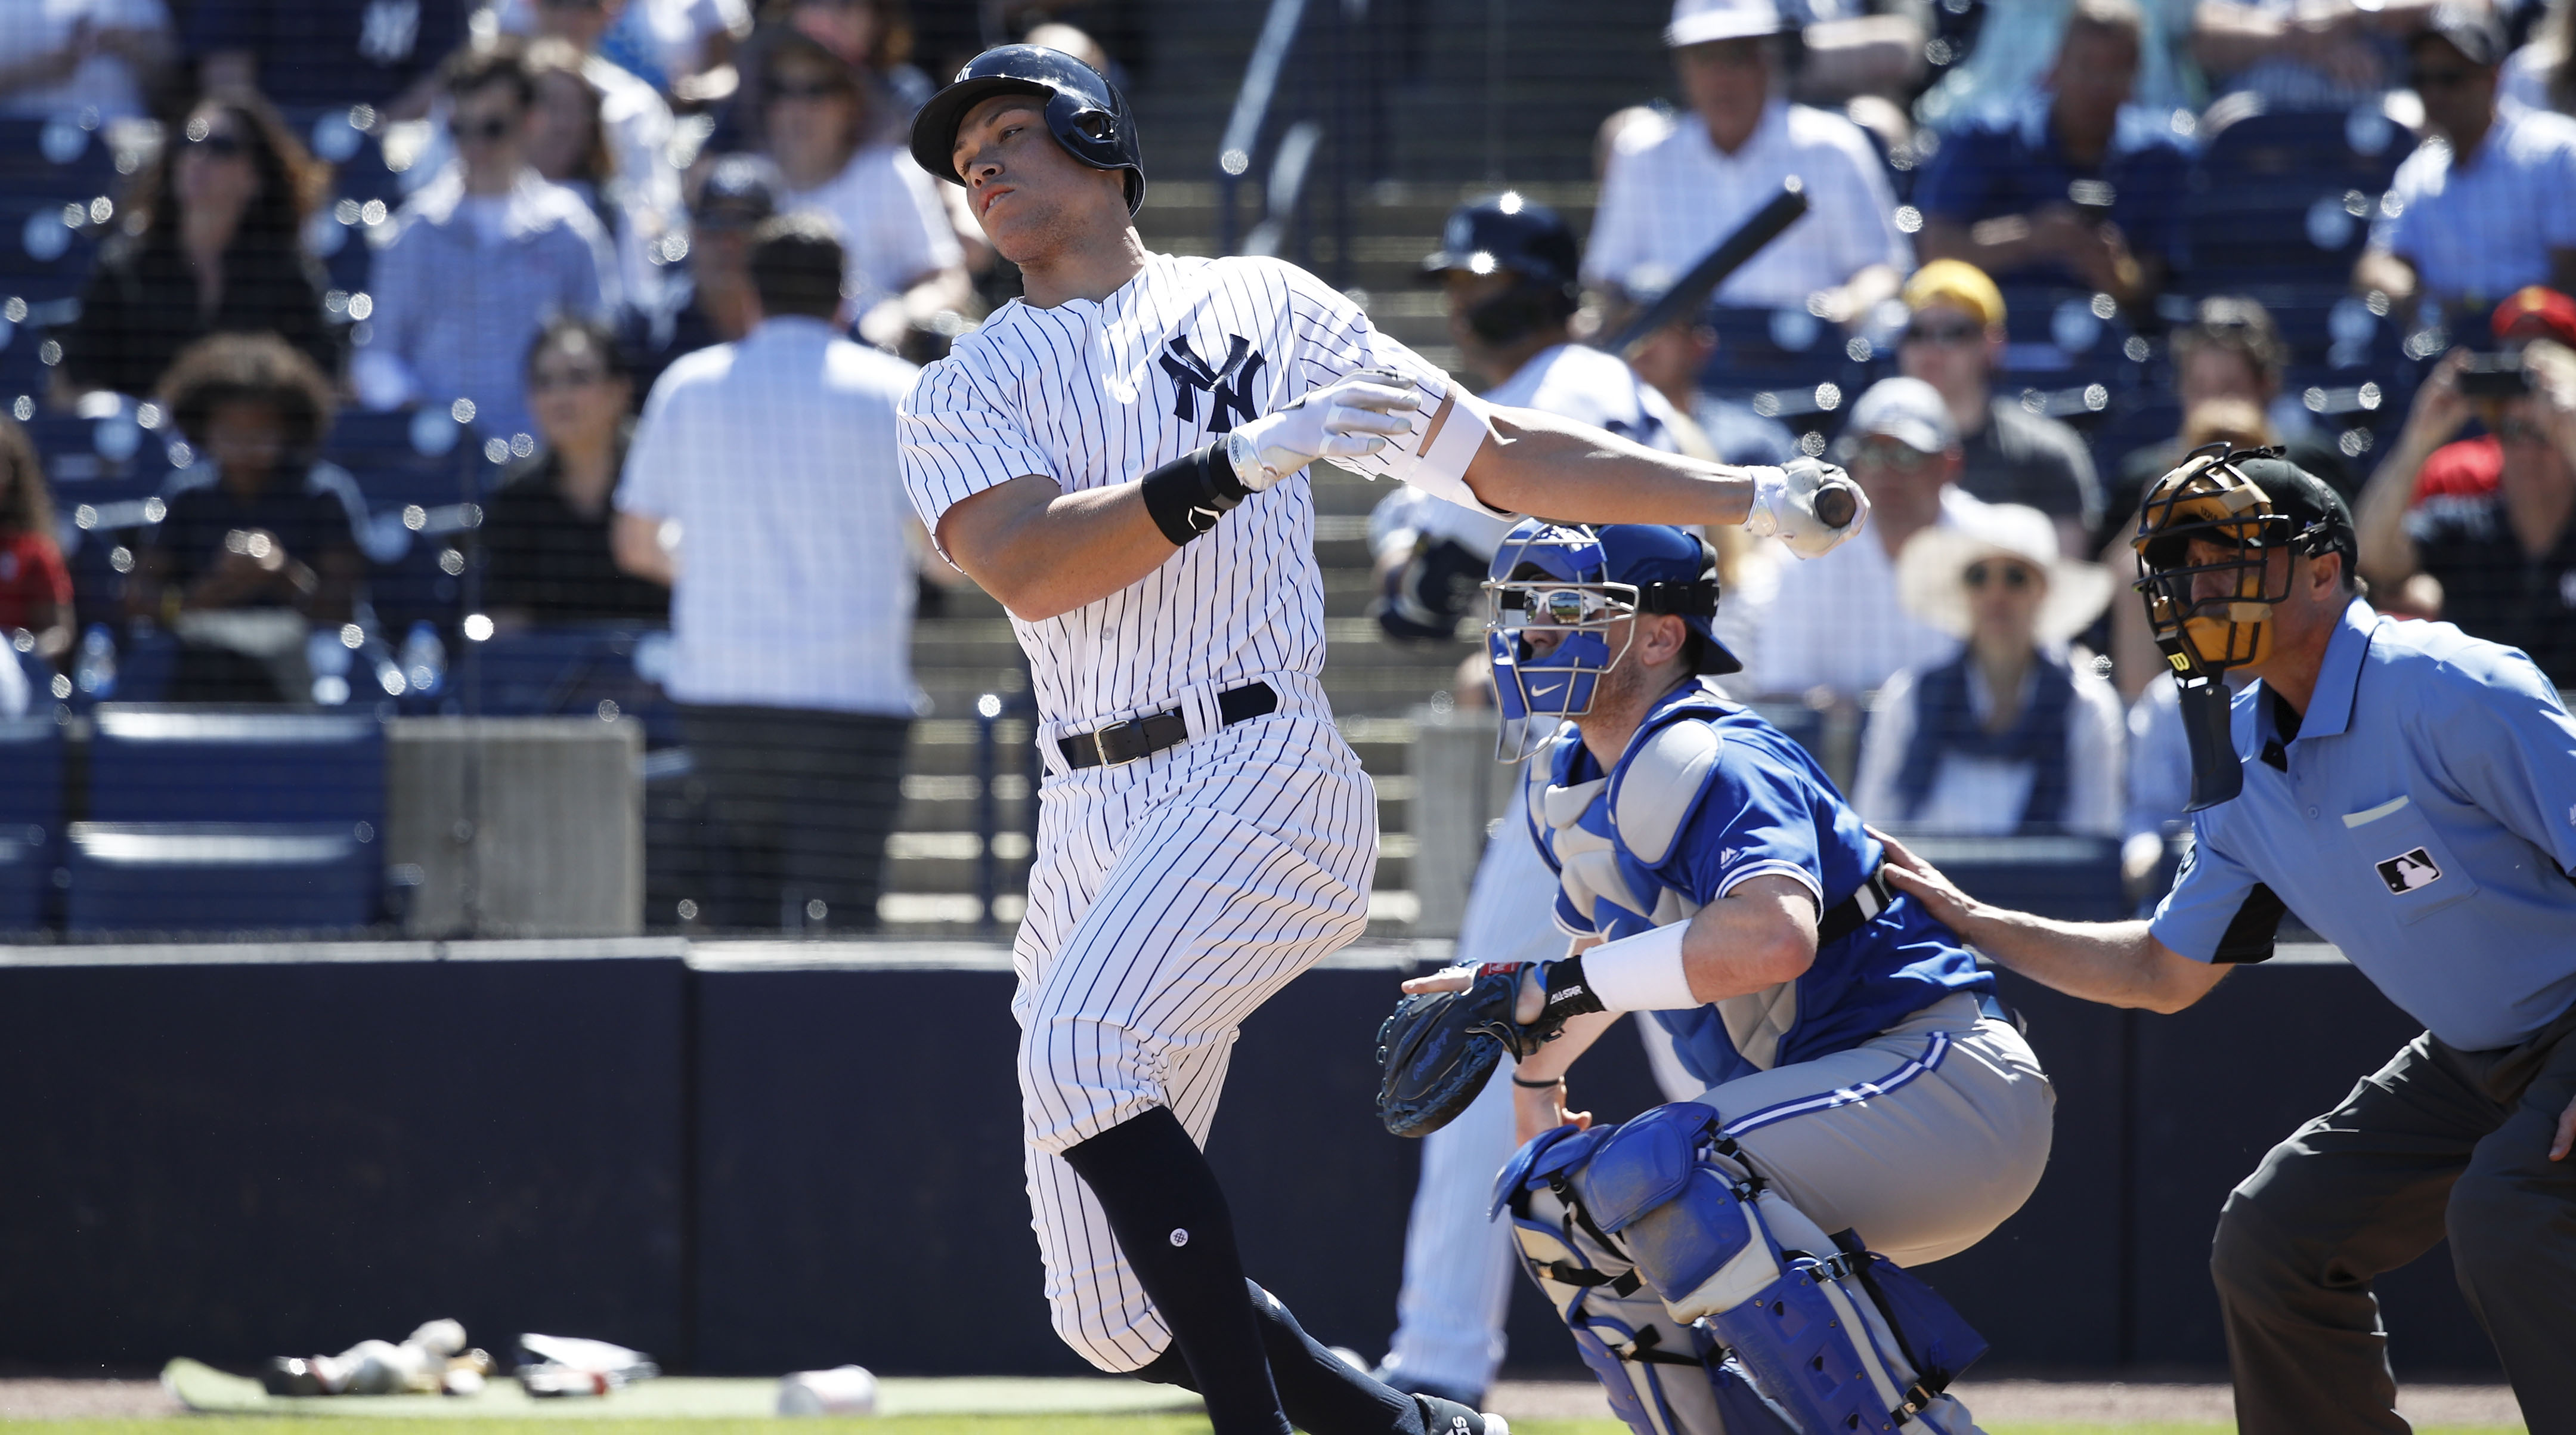 Yankees want to break home run record